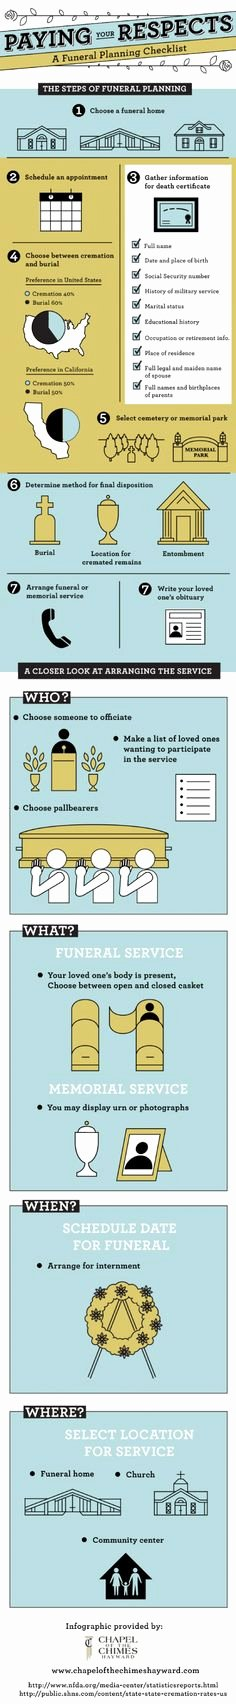 Certificate Of Cremation Template Luxury Funeral order Service Outline